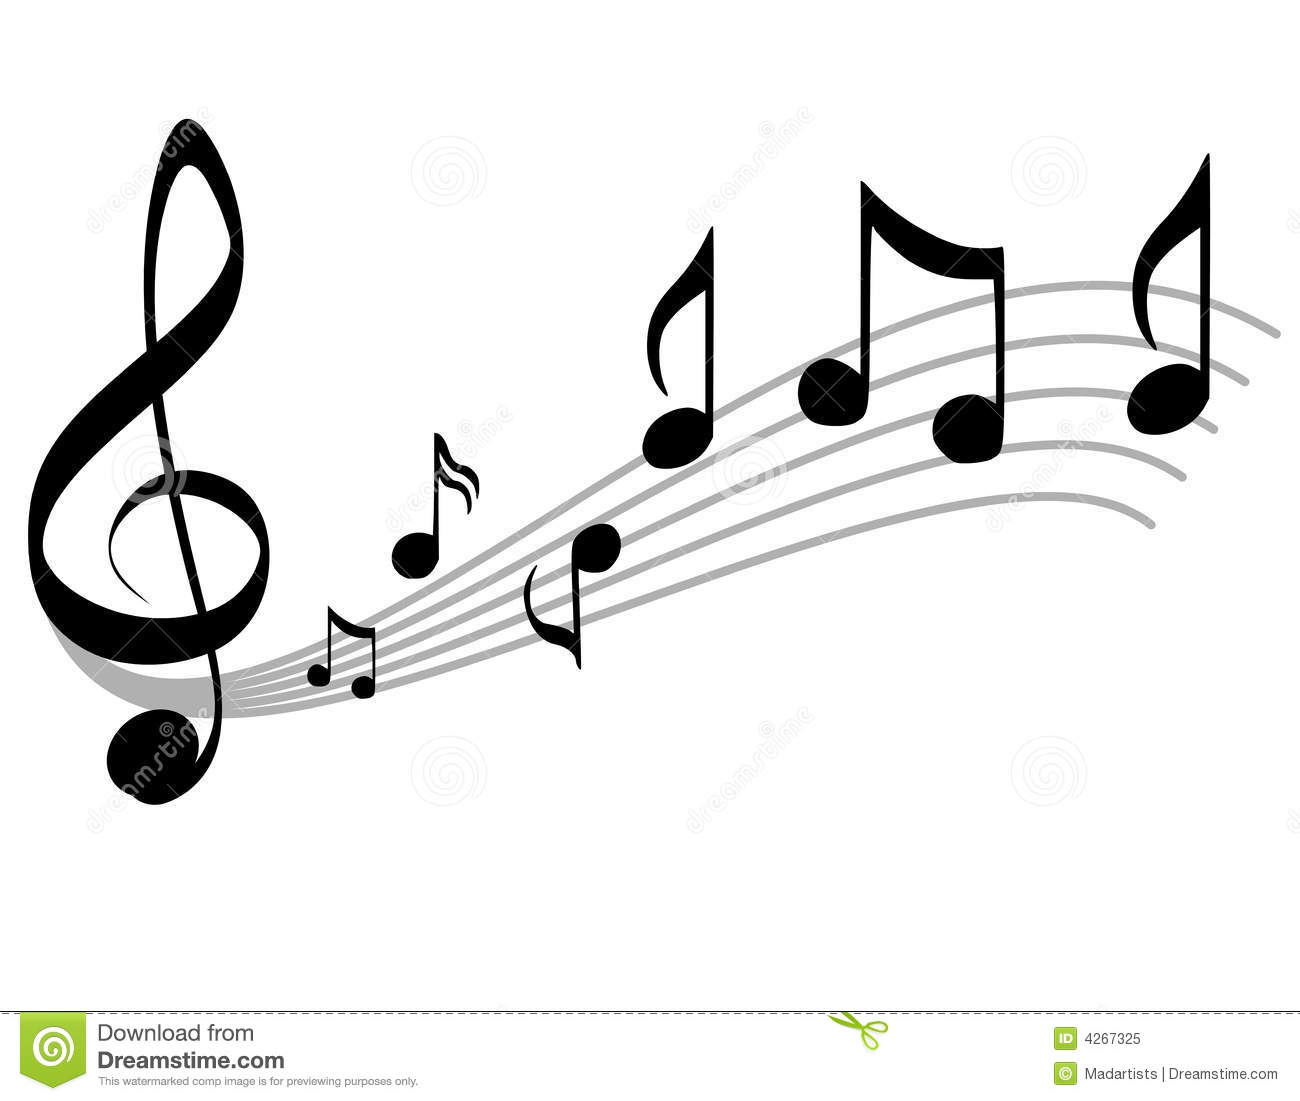 gratis clipart music - photo #22